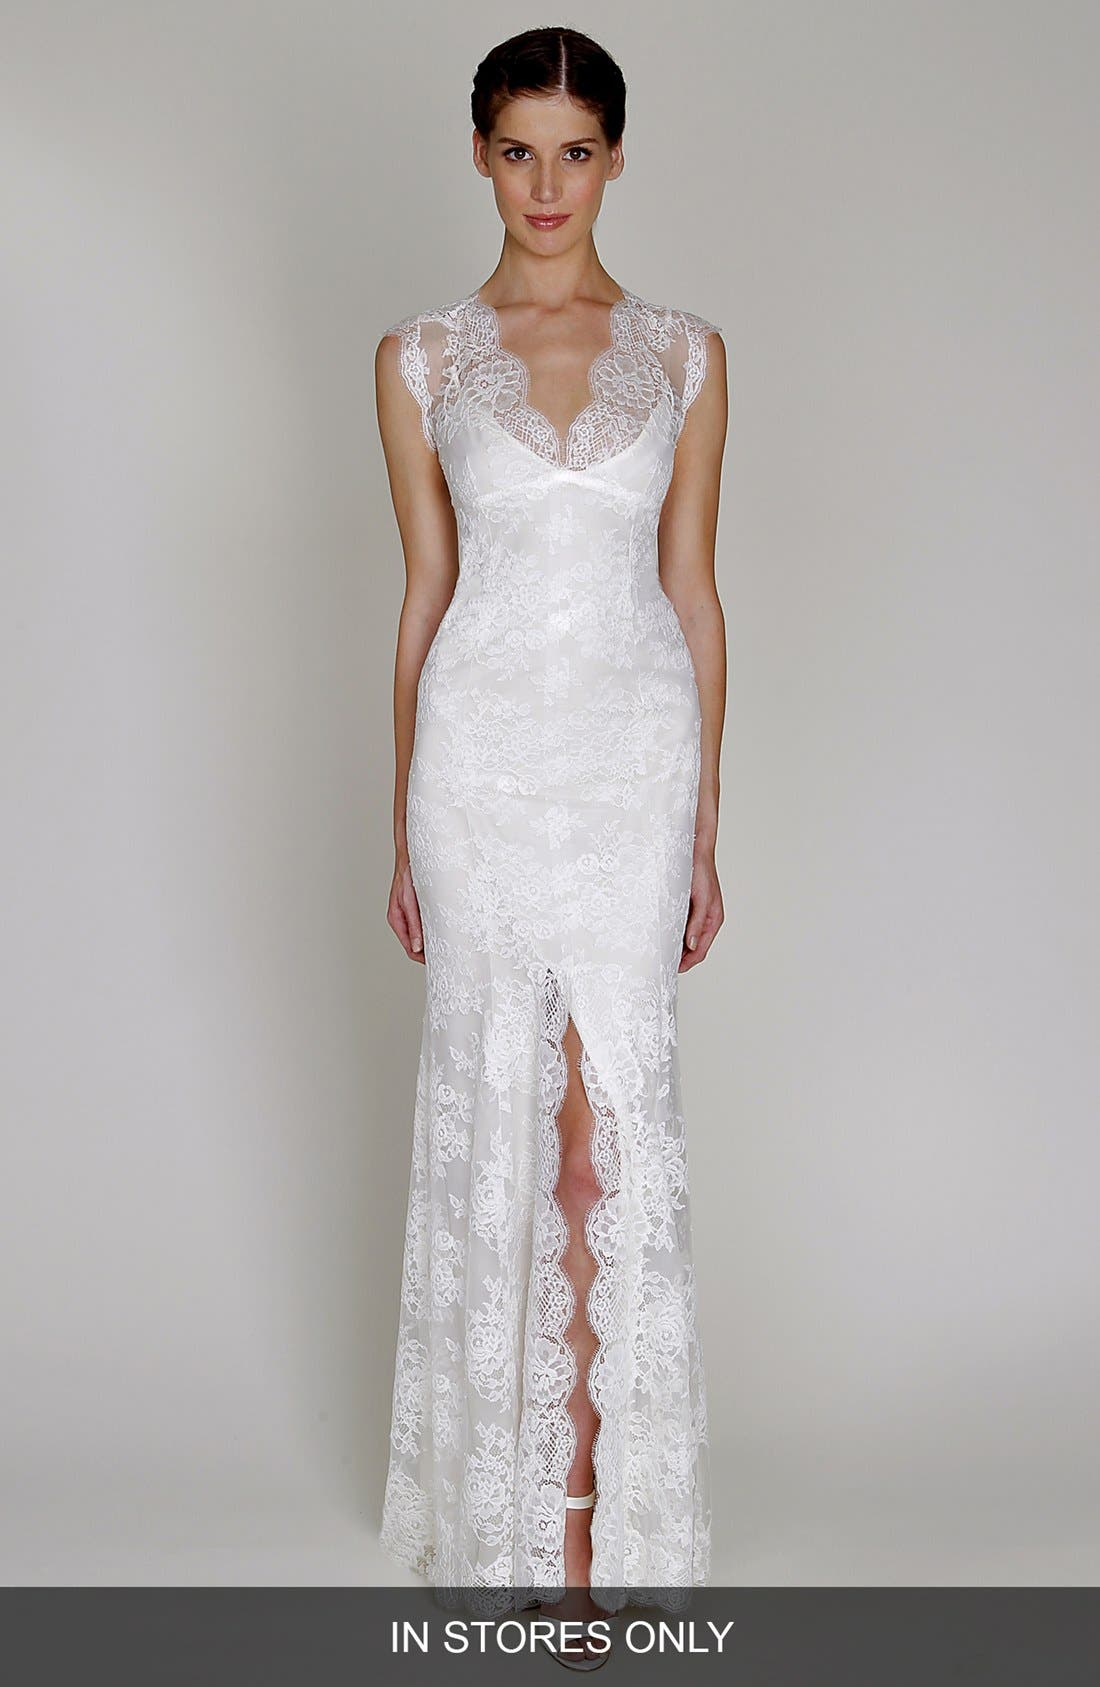 Alternate Image 1 Selected - BLISS Monique Lhuillier Chantilly Lace Open Back Wedding Dress (In Stores Only)